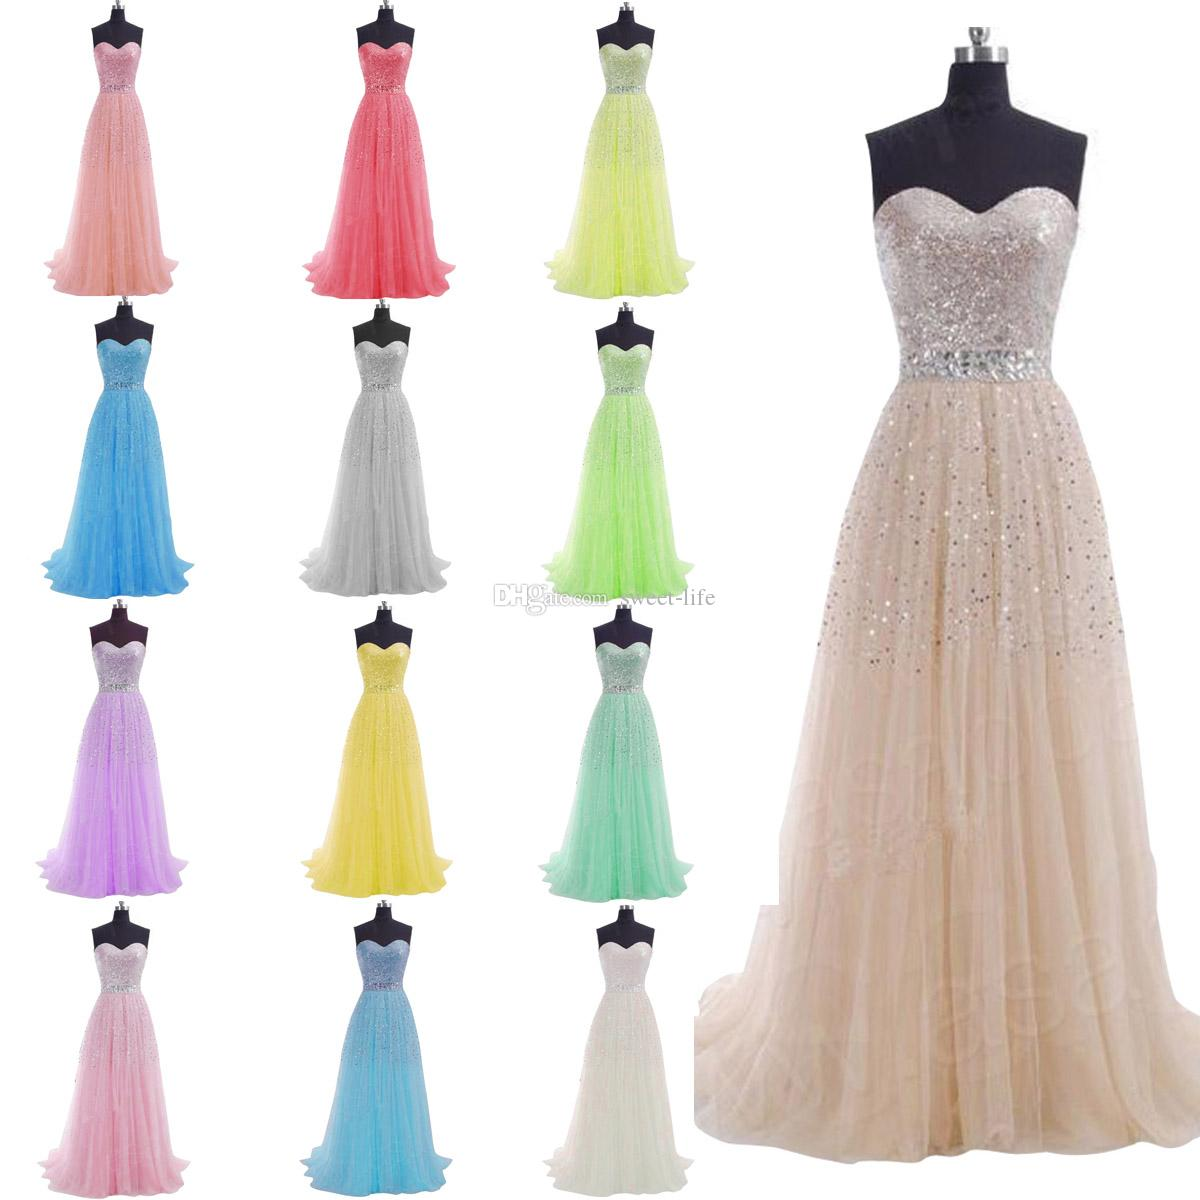 IN STOCK 2015 Cheap Long Prom Dresses Bling Sequins A Line Sweetheart Tulle Lace Up Lilac Blue Coral Party Bridesmaid Dresses Evening Gowns